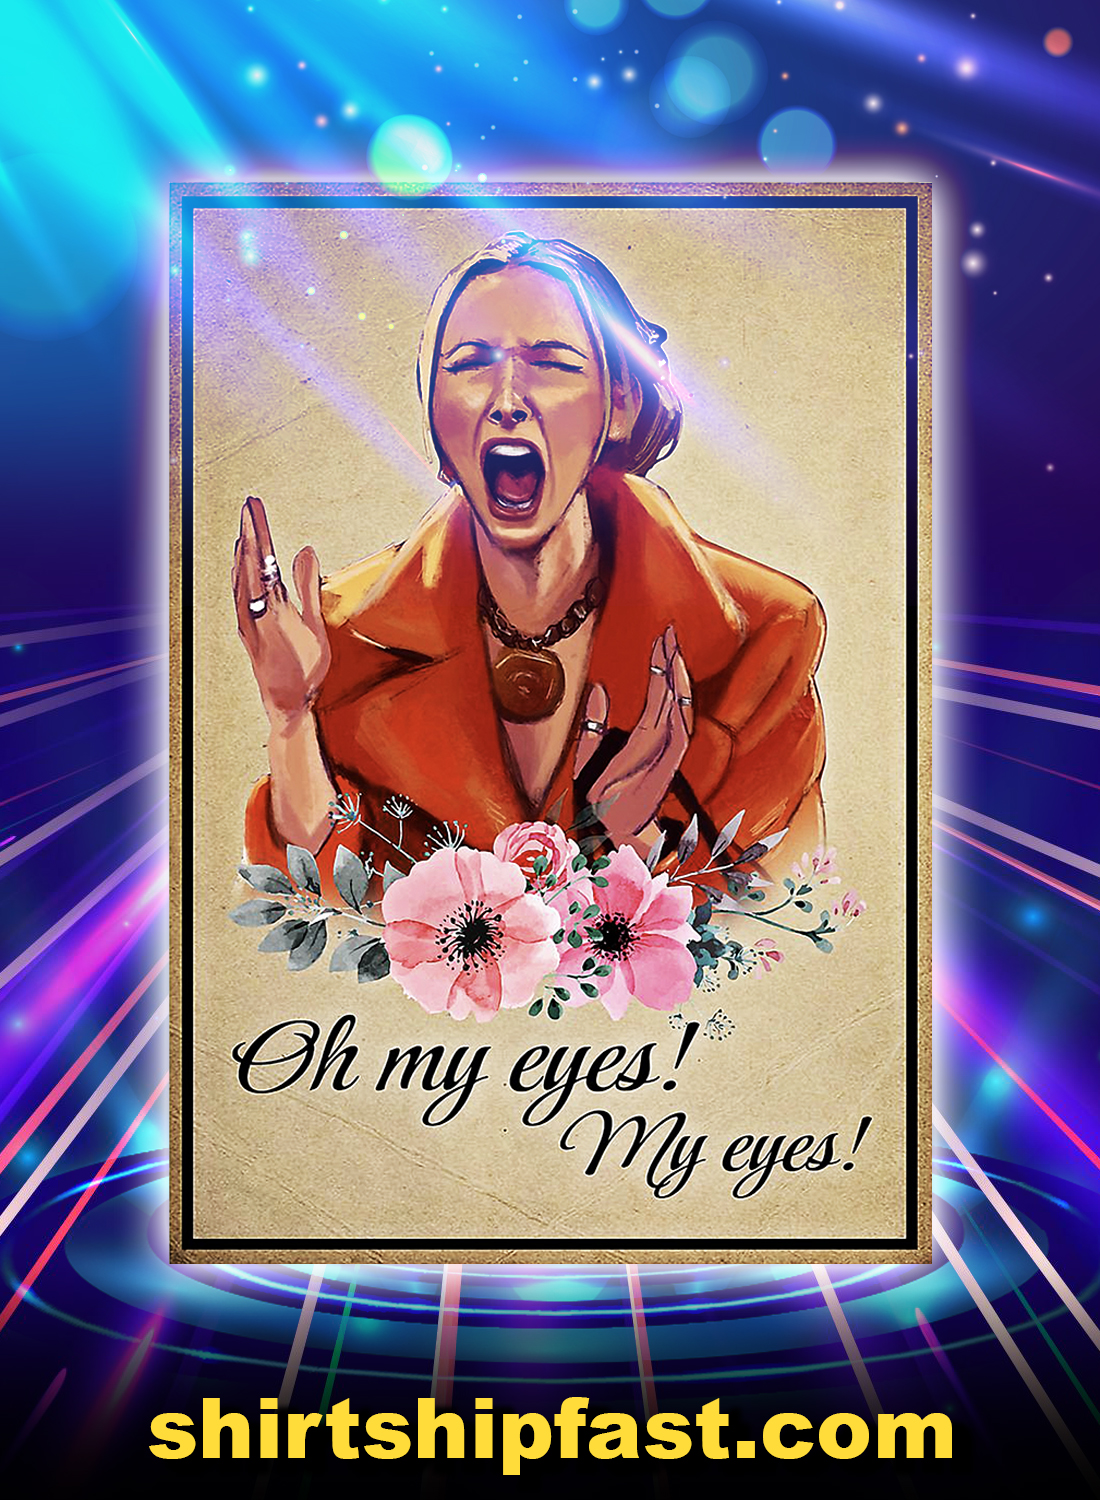 Friends phoebe buffay oh my eyes poster - A4